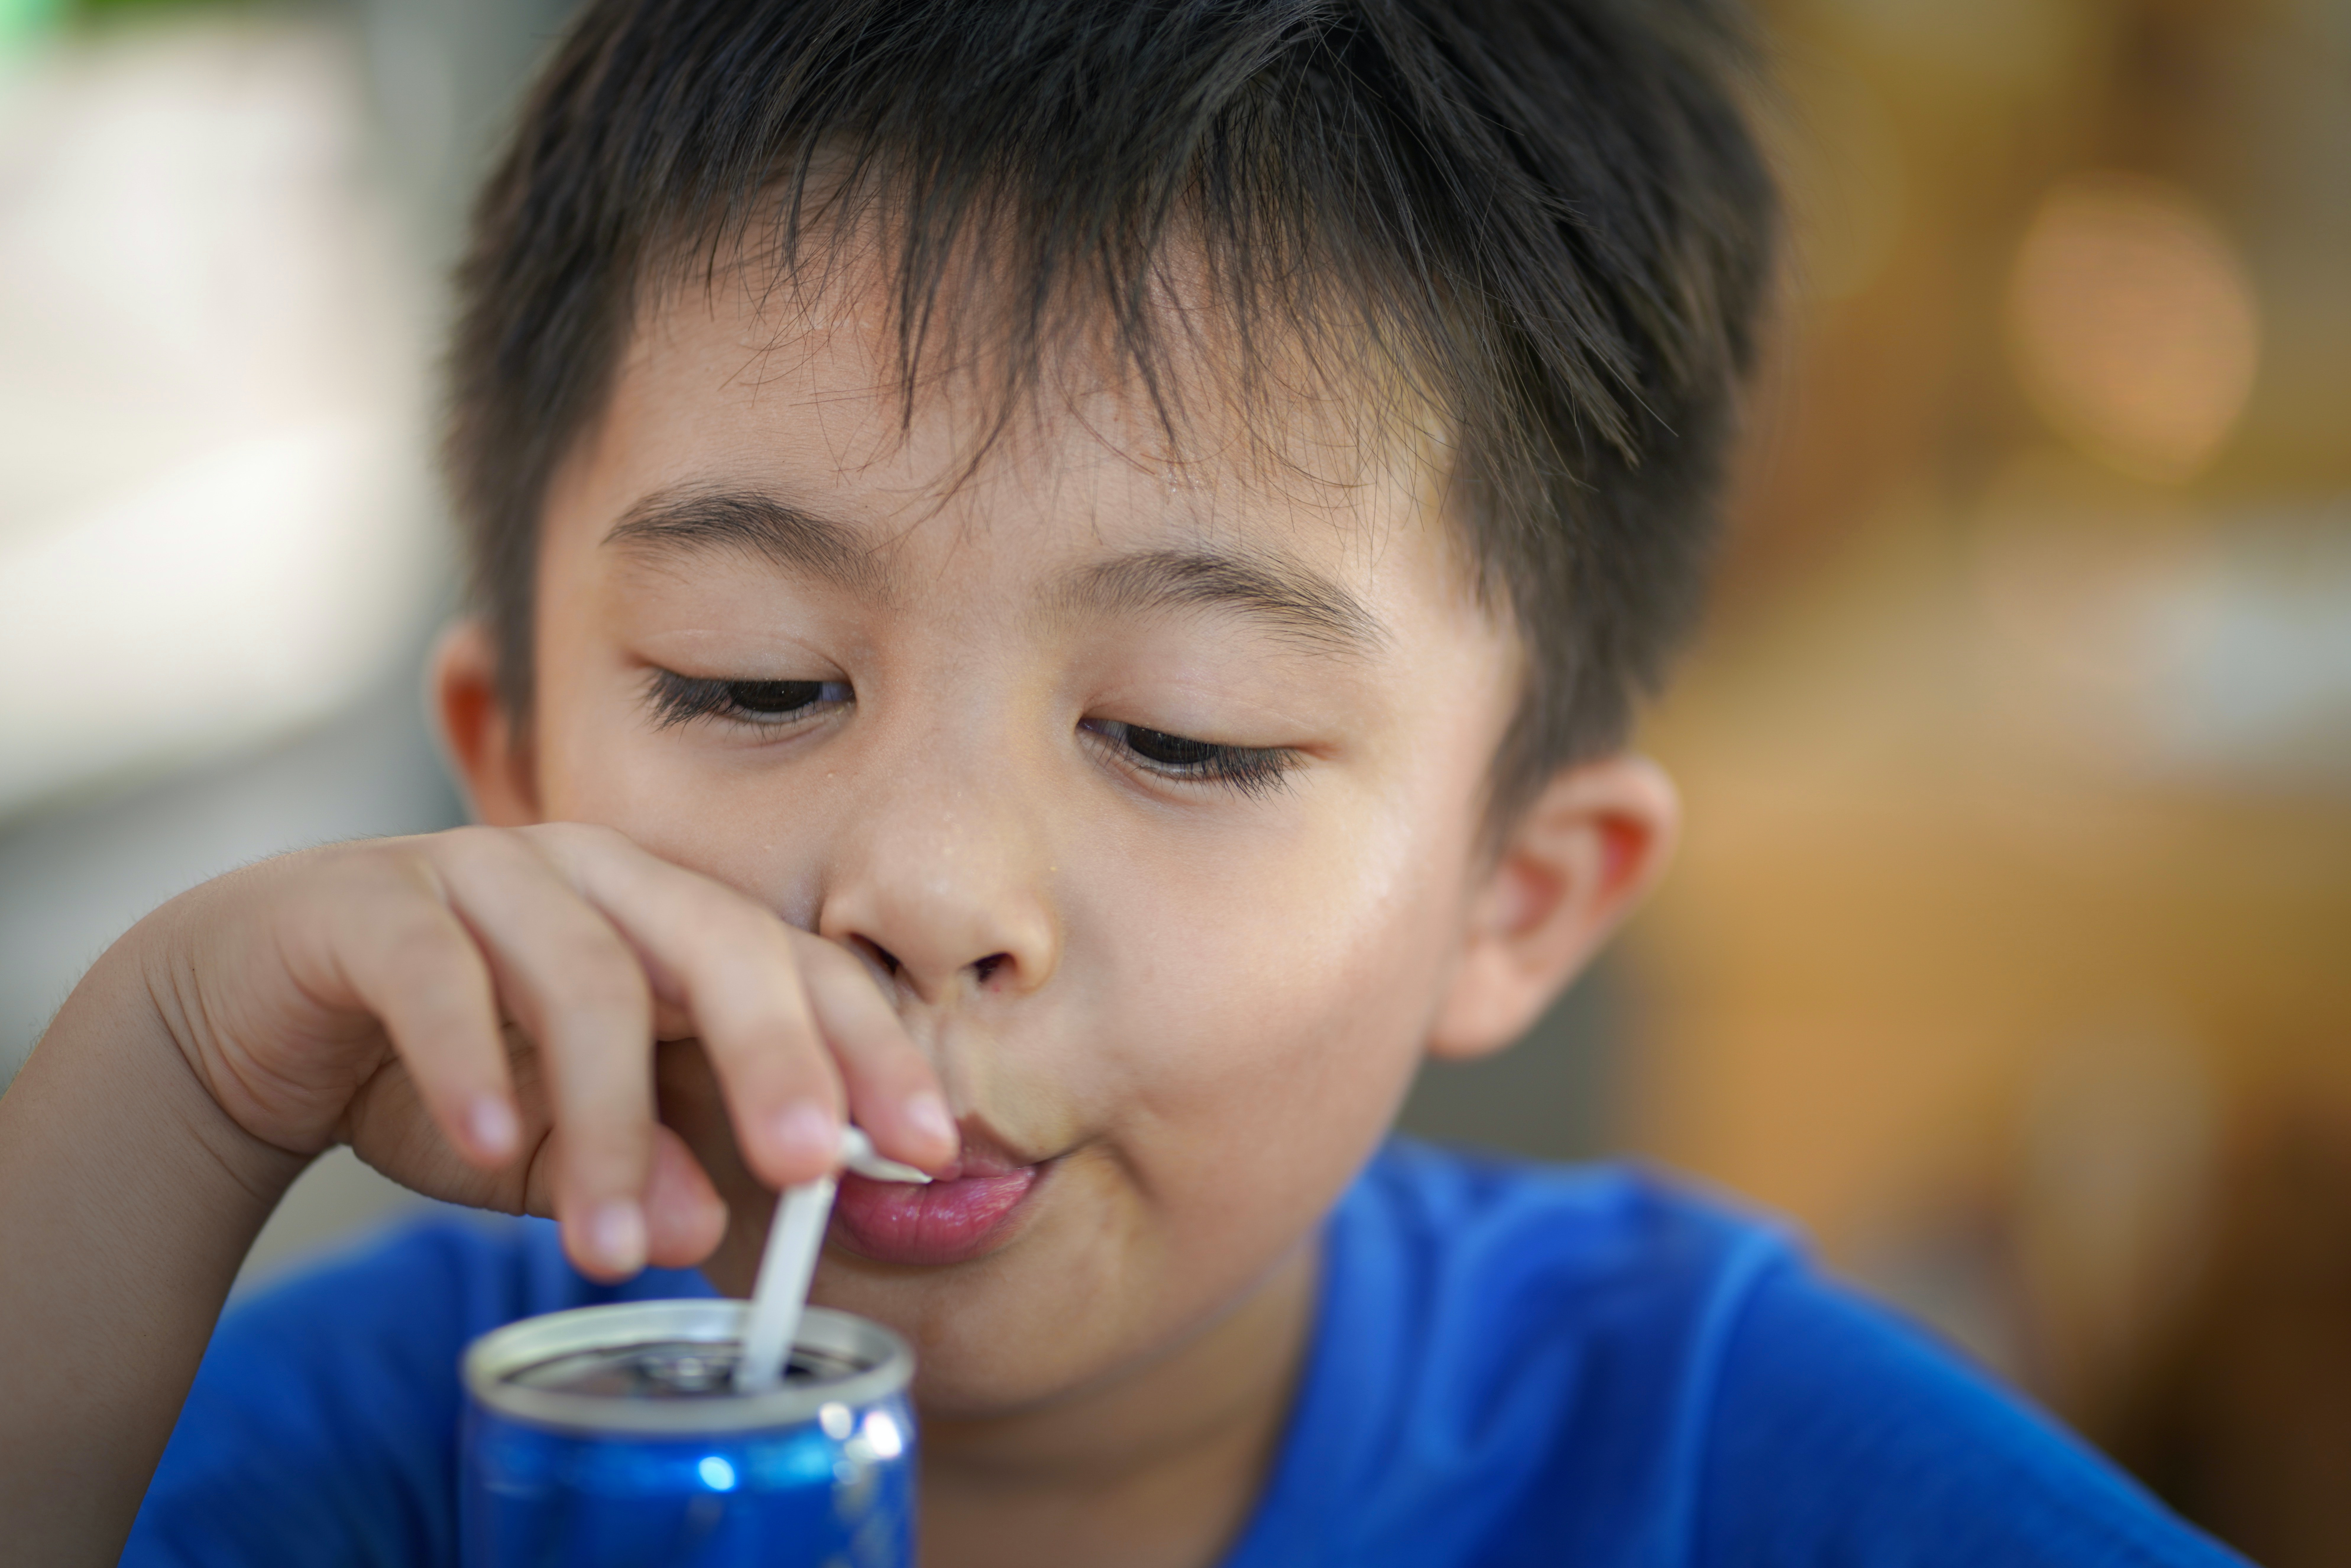 Is Sparkling Water OK For Toddlers To Drink? Experts Weigh In